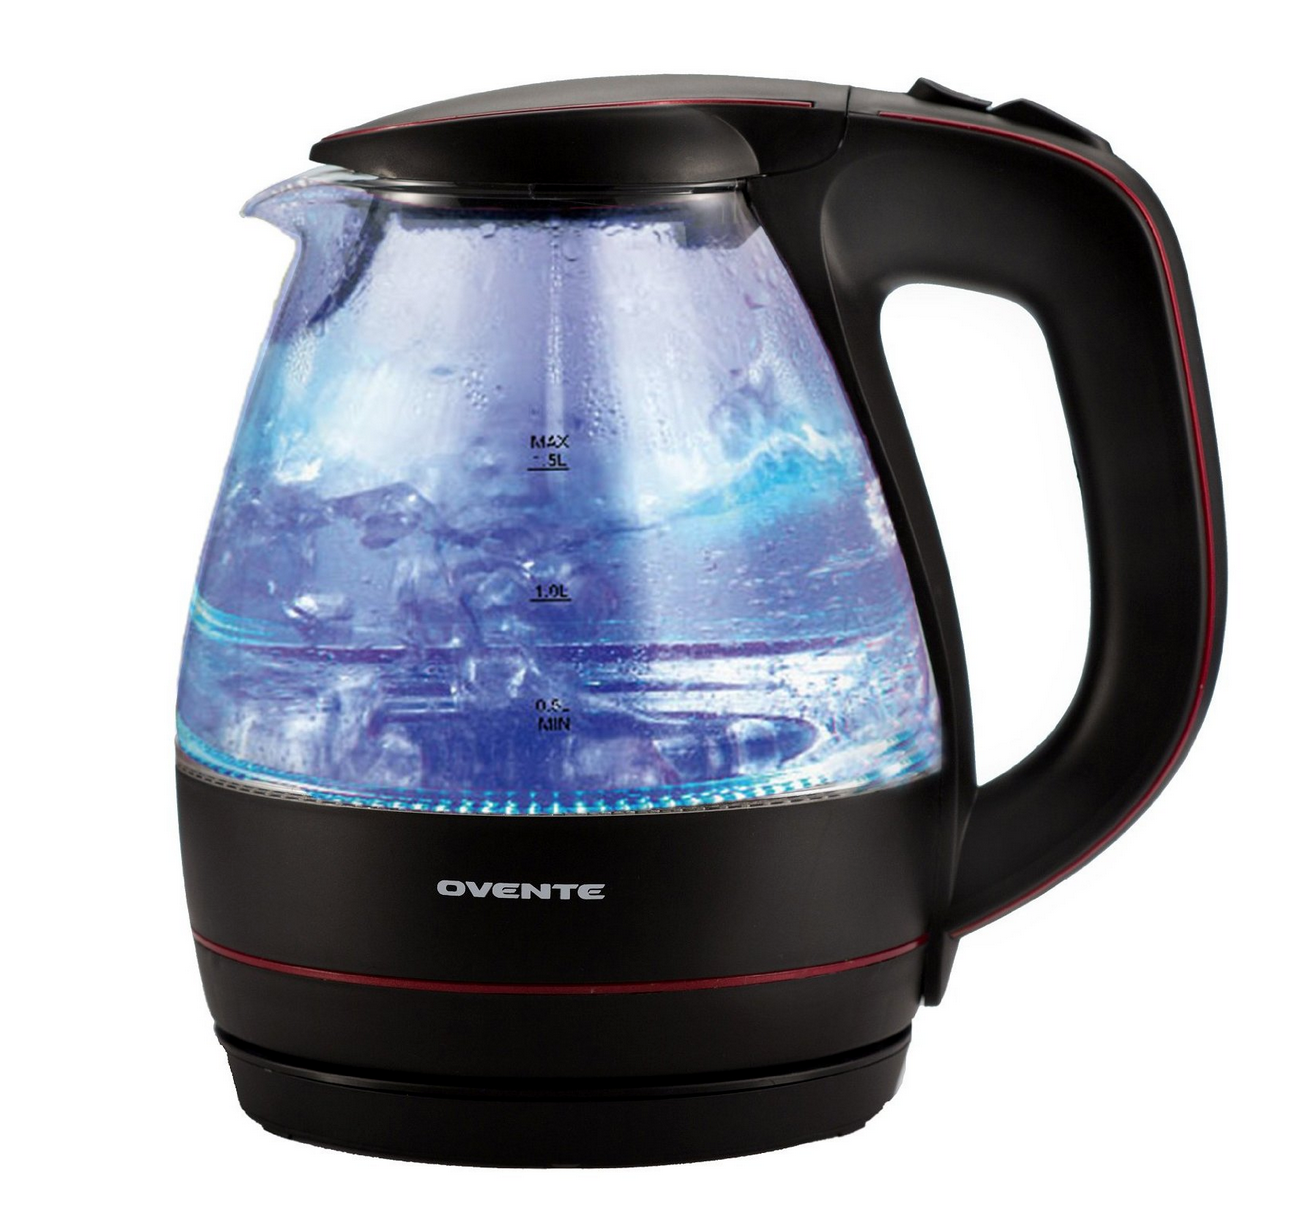 Ovente Glass Electric Kettle Only $24.99 (Reg. $49.99!) – Lowest Price!